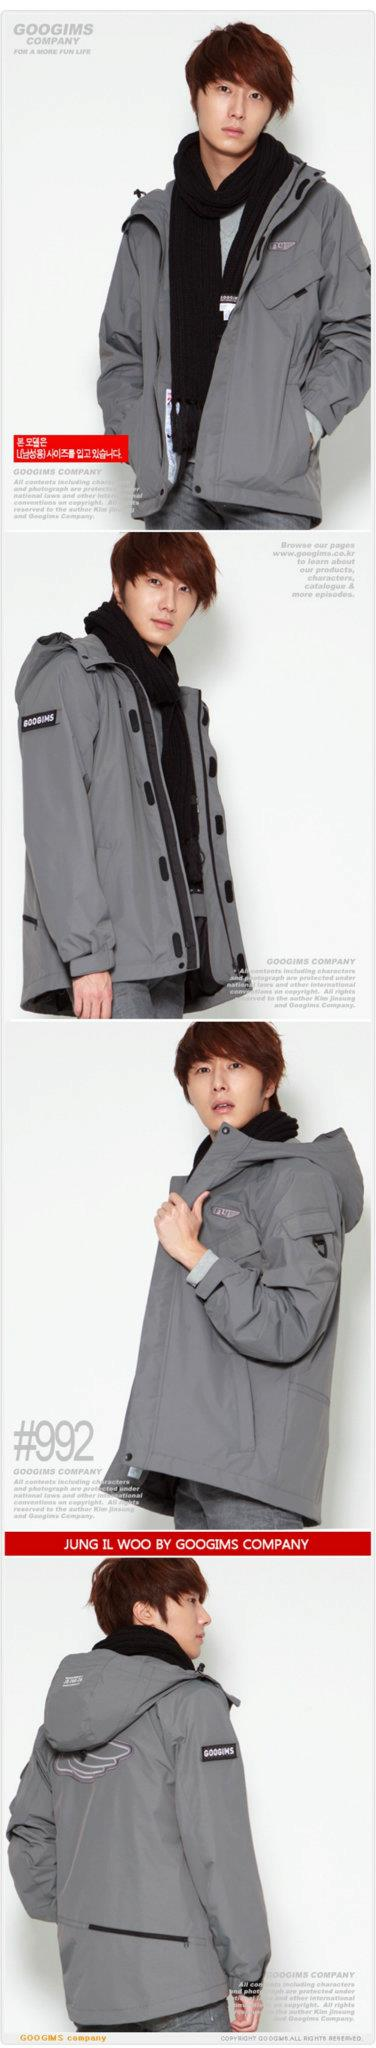 2011 10 Jung II-woo for Googims. Part 3 00002